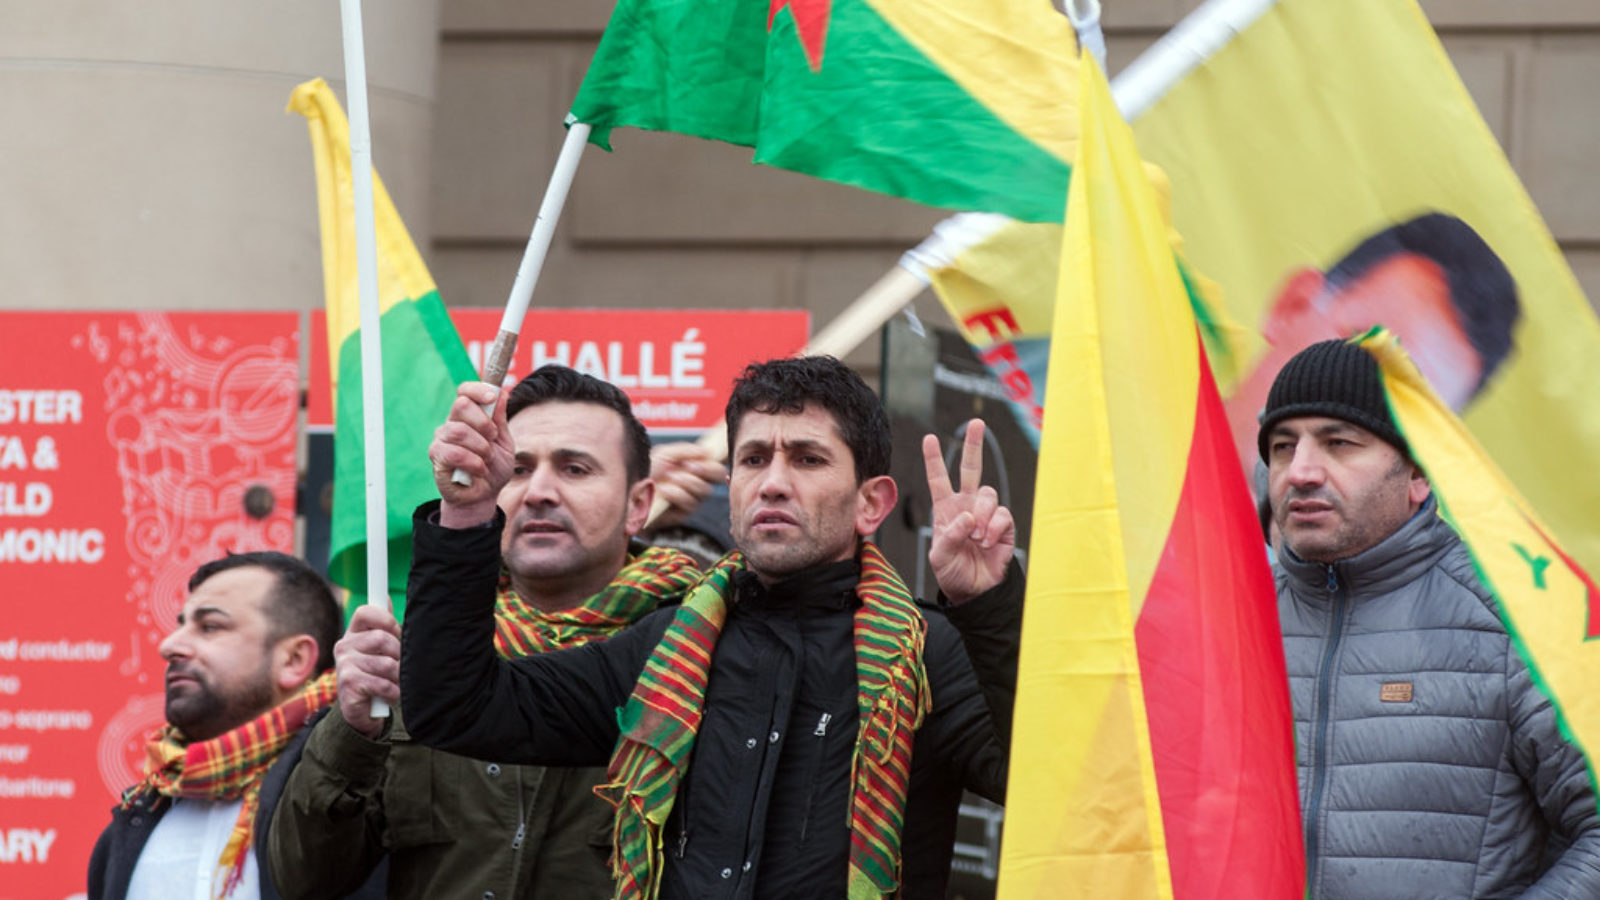 Four men holding Kurdish flags, participating in protest against Kurdish military aggression.